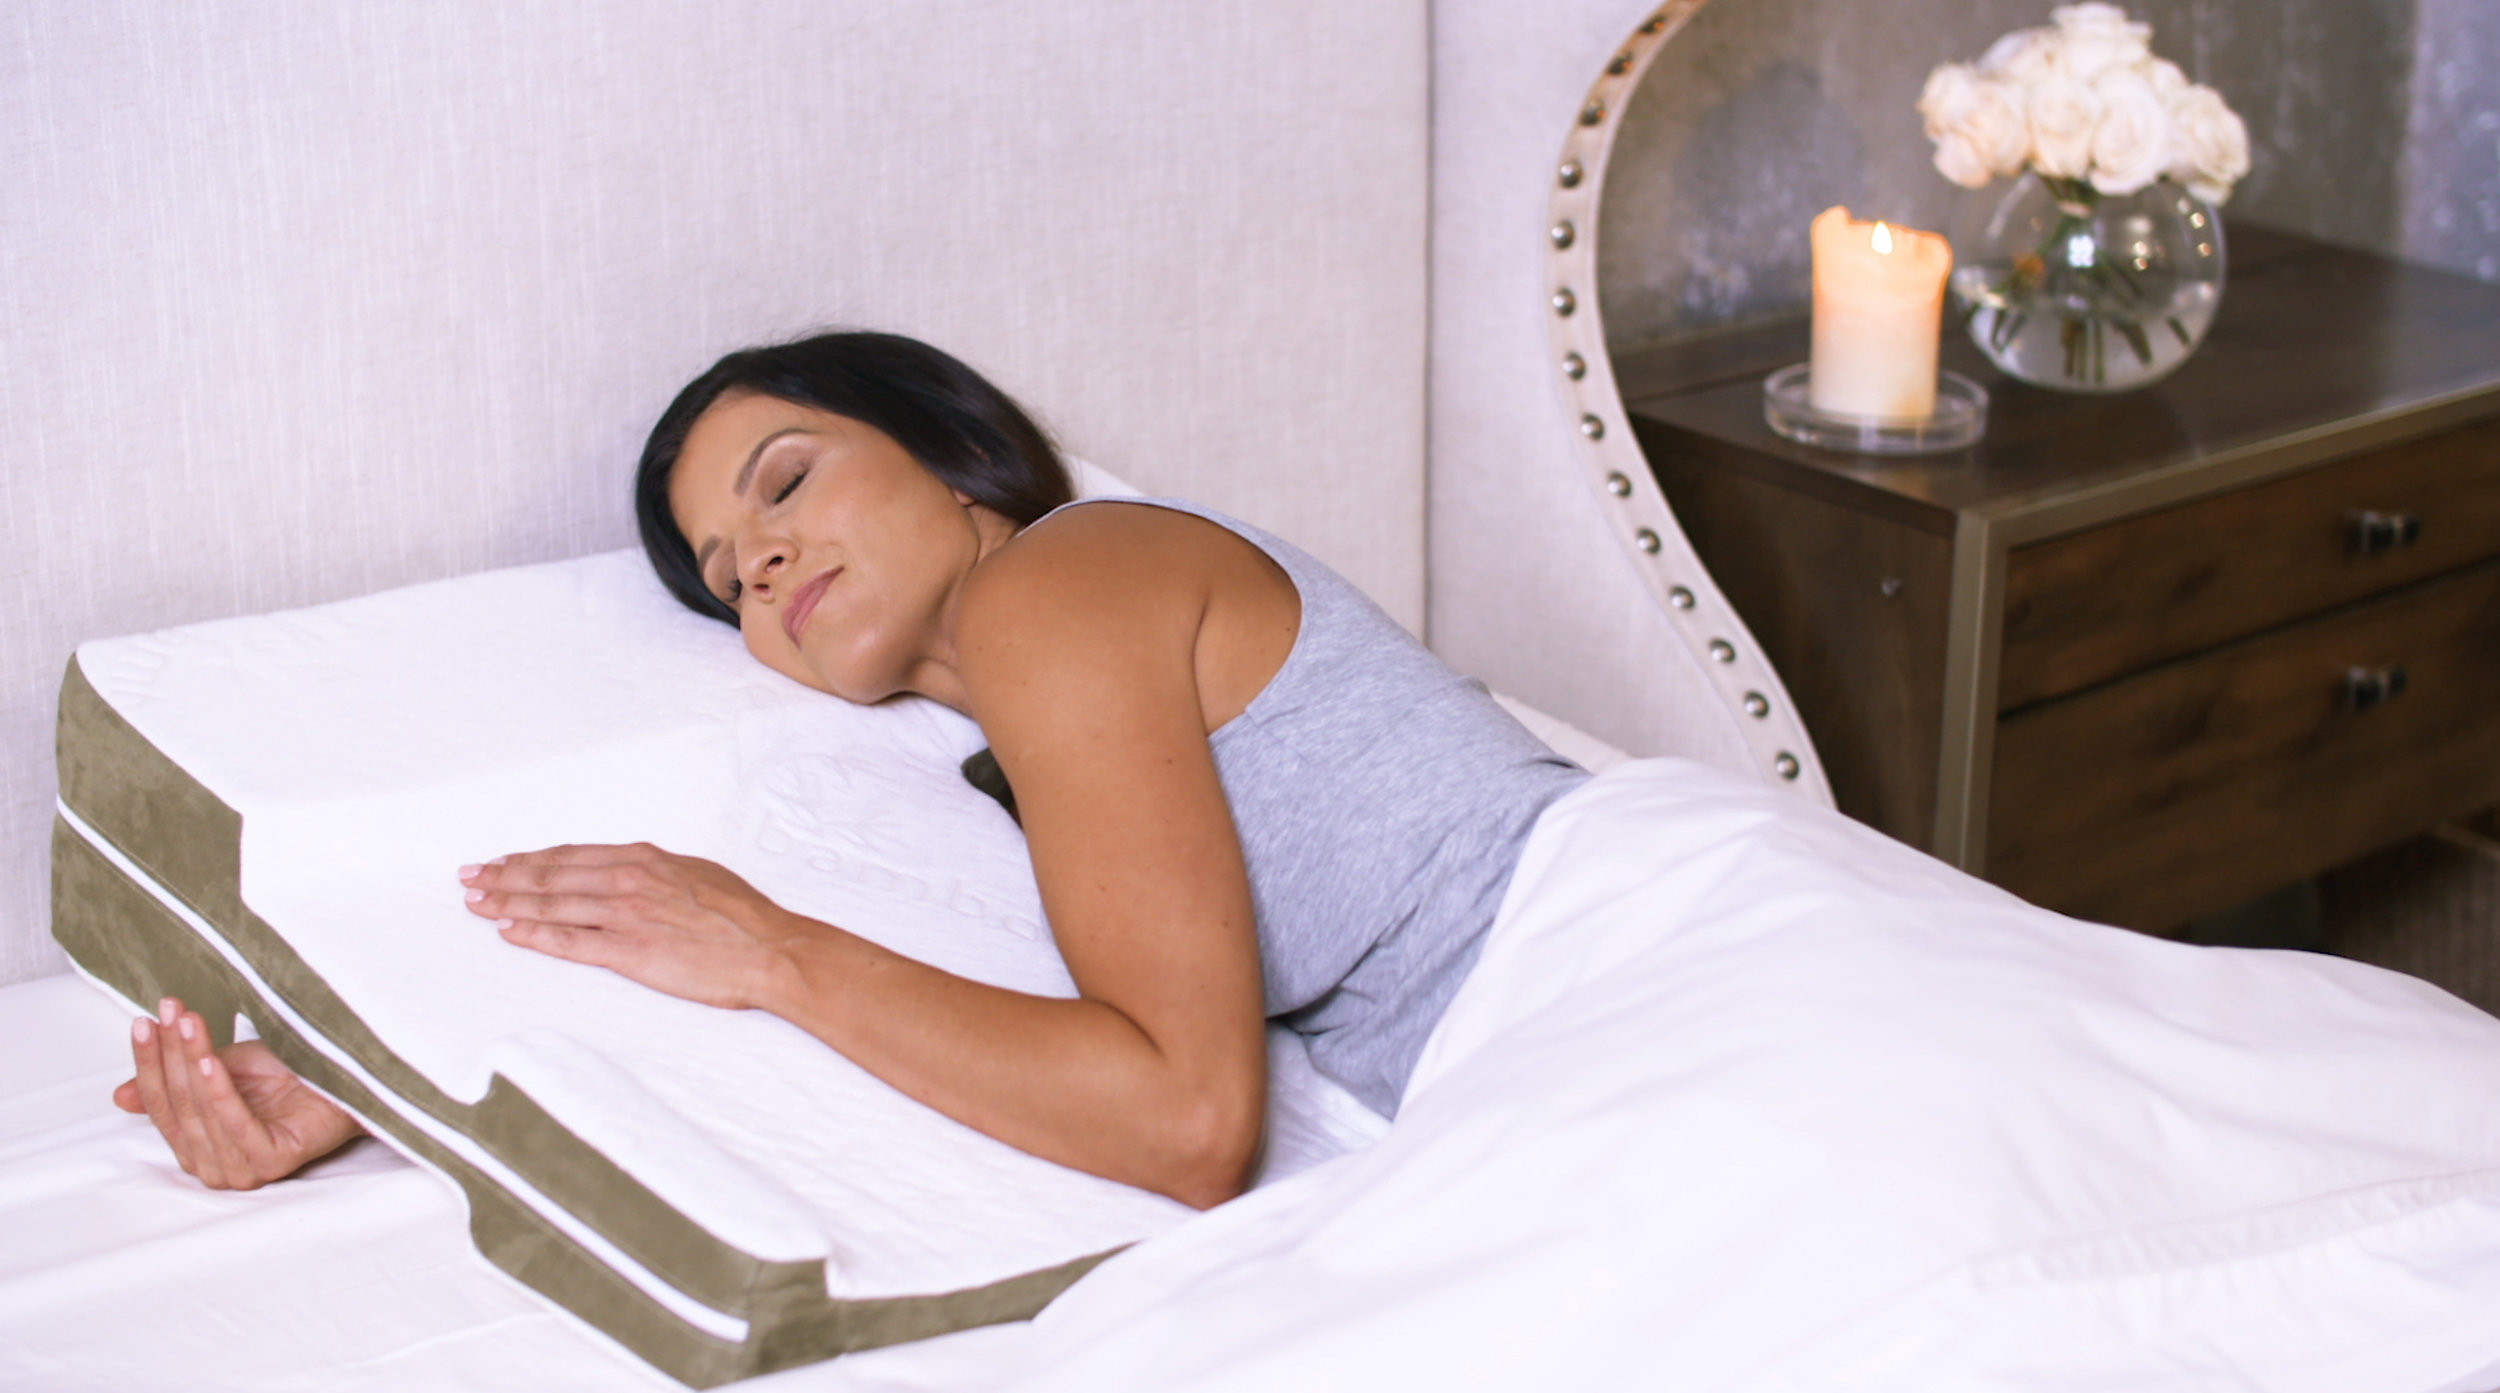 Powerful + Therapeutic Pain Relief - Regular pillows cause you to sleep in cramped, awkward positions, causing neck problems, back pain, and shoulder impingement. With the Shoulder Pillow, you'll sleep in a proper anatomic position— every night— which means less pain, taller posture, better sleep, and more energy to do what you love.